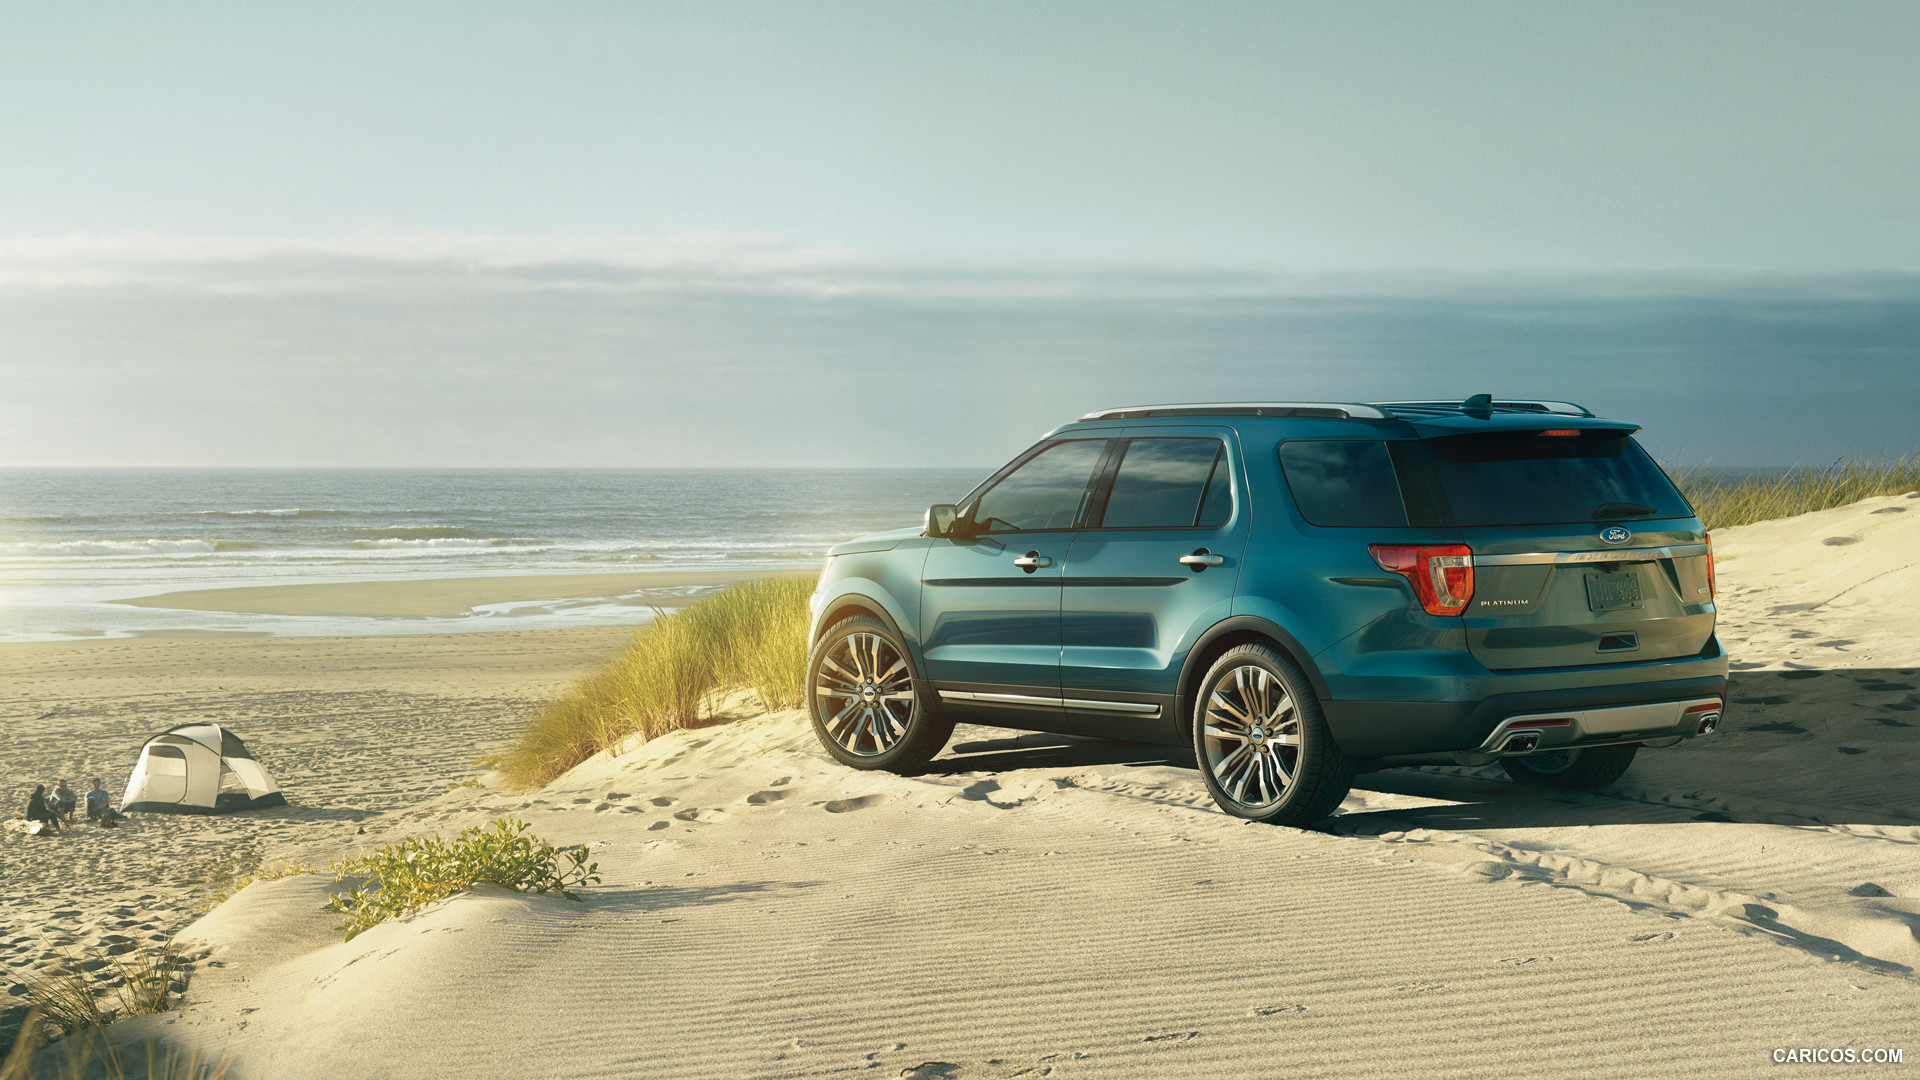 1920x1080 - Ford Explorer Wallpapers 19